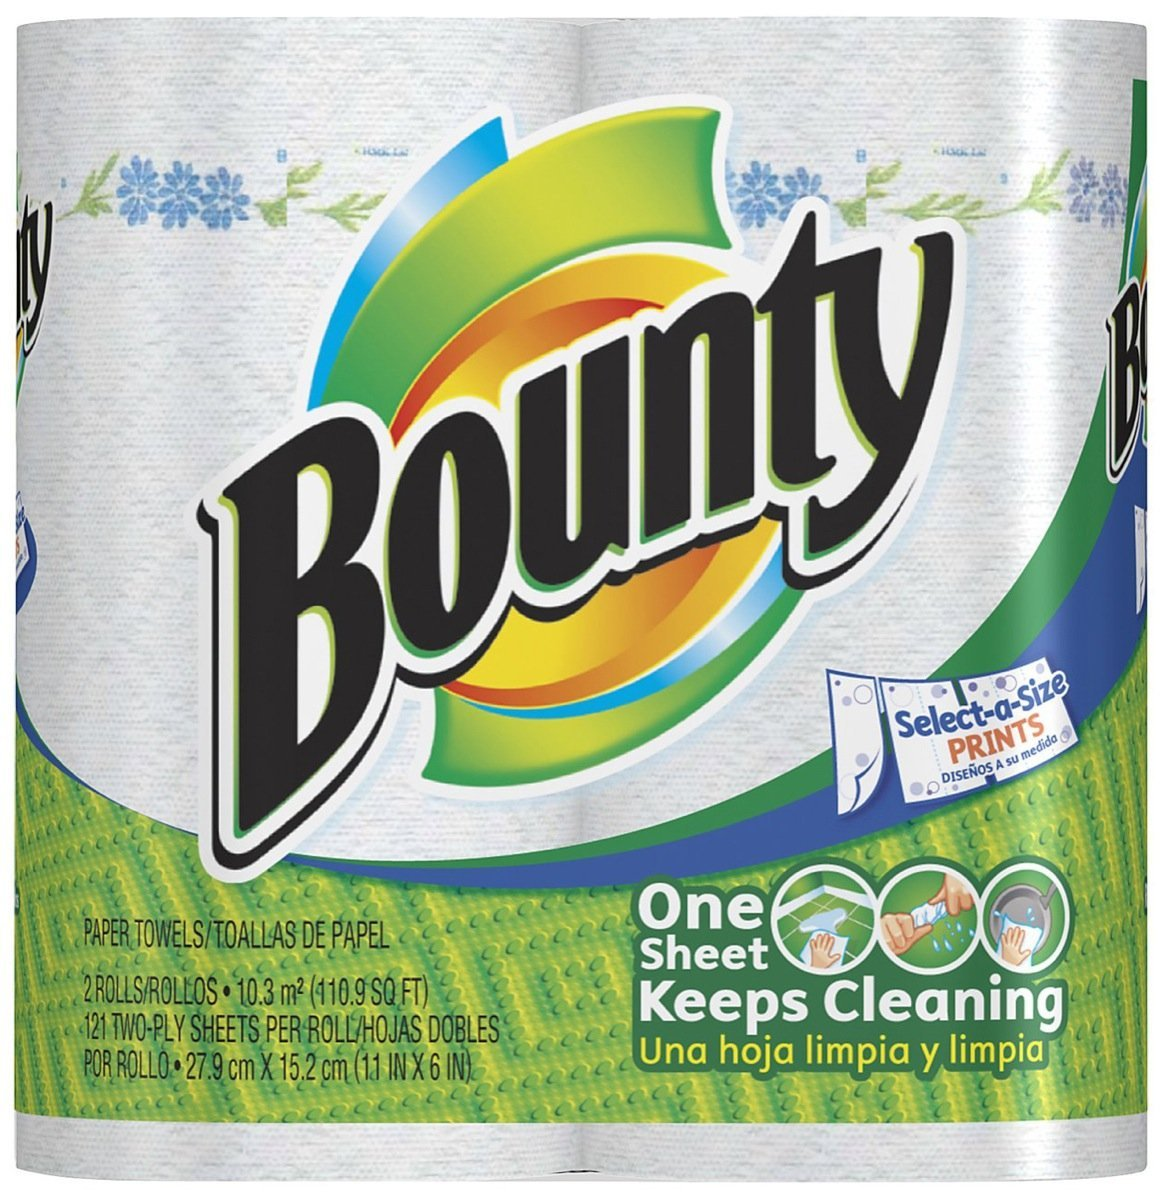 Amazon.com: Bounty Value Roll, 2 Ply, Prints, 2 ct: Health & Personal Care